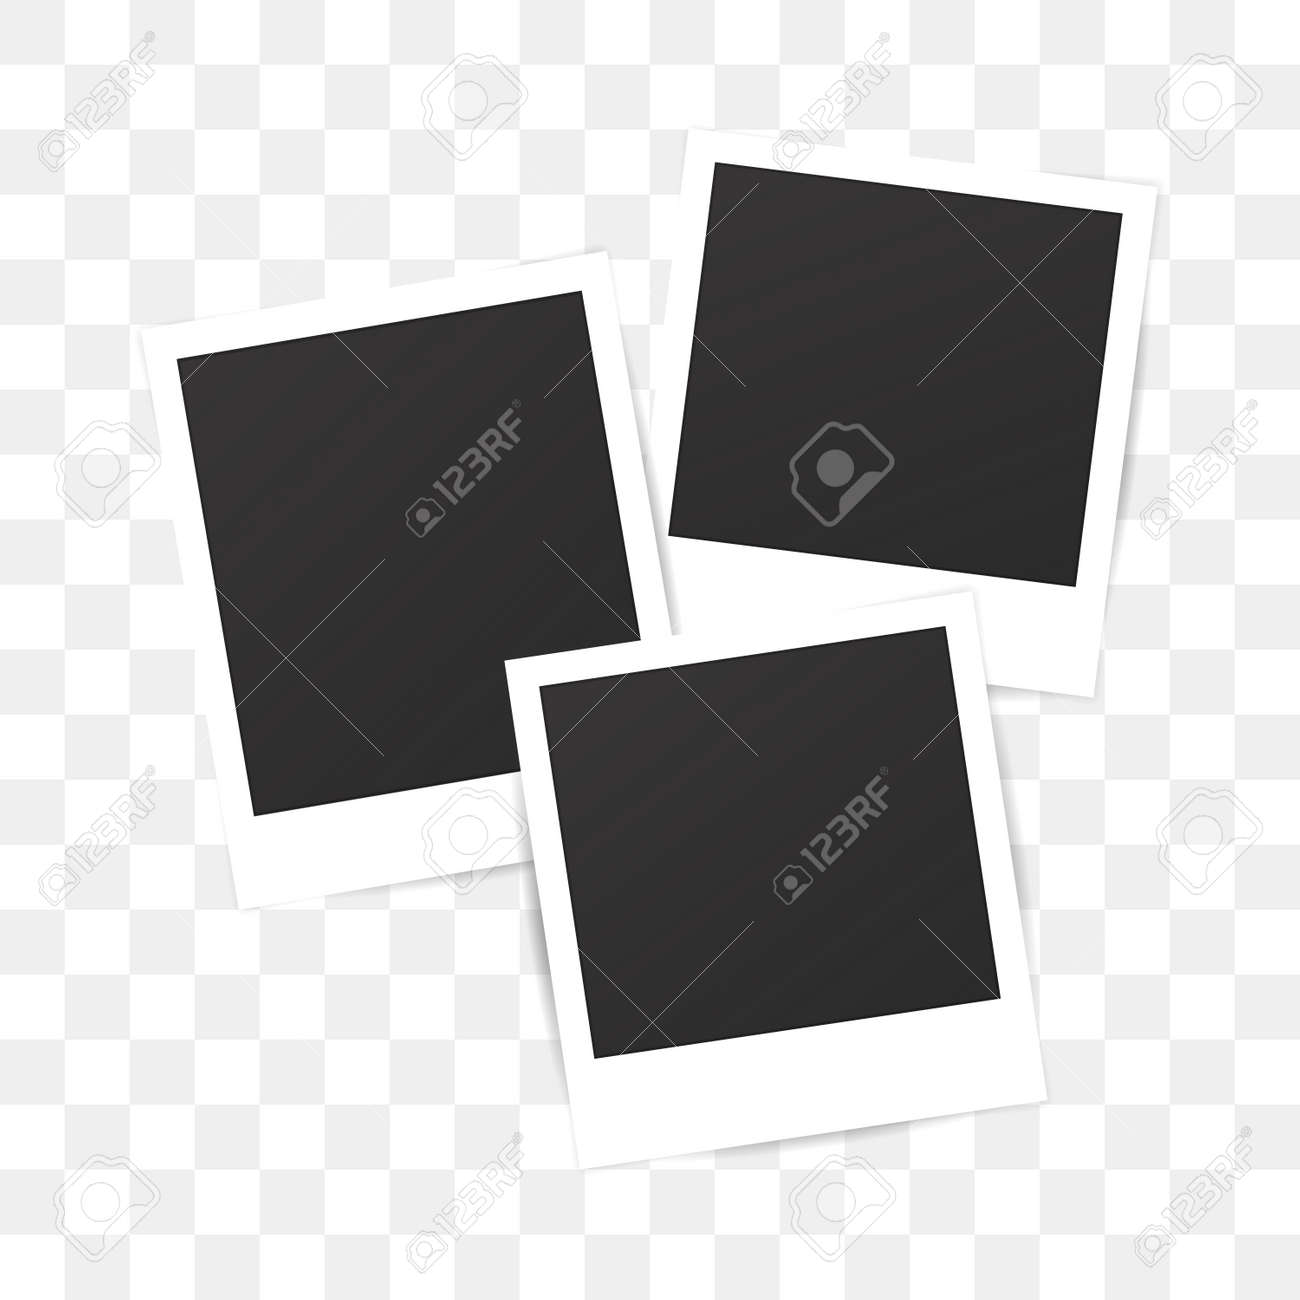 Blank Set Photo Polaroid Frame On Transparent Background Shadow Effect For Your Photography Mockup